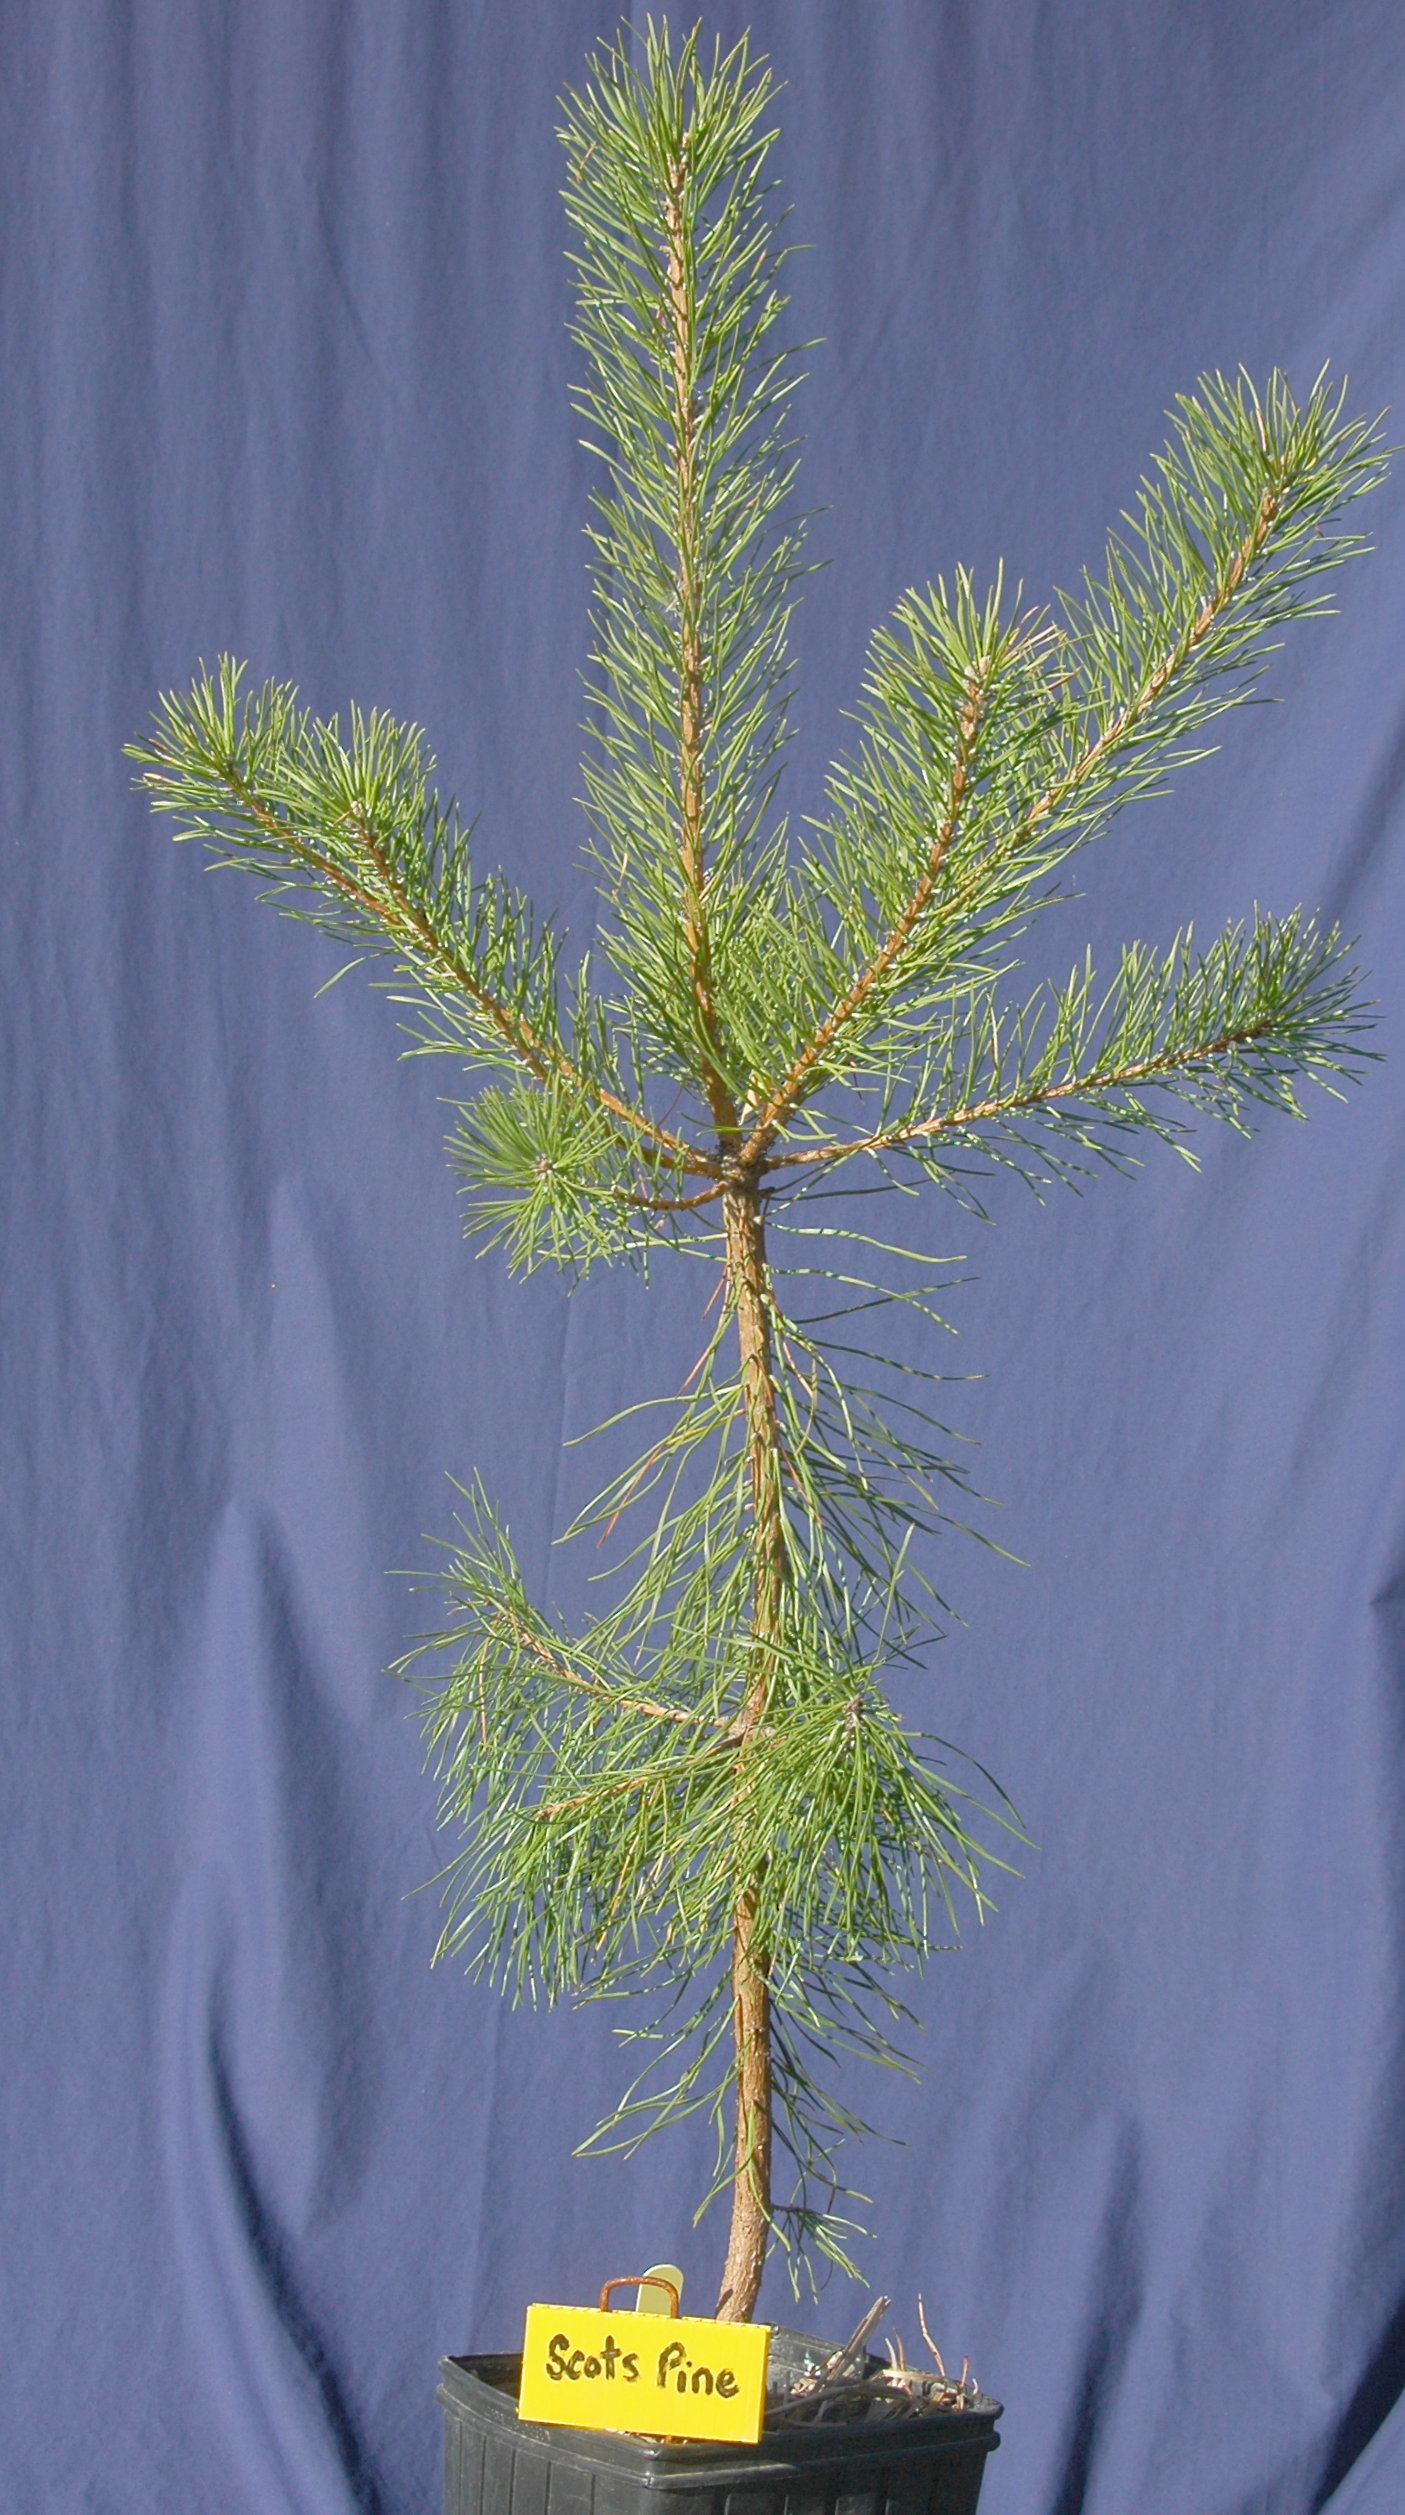 Scots Pine in 2 gallon stuewe pot